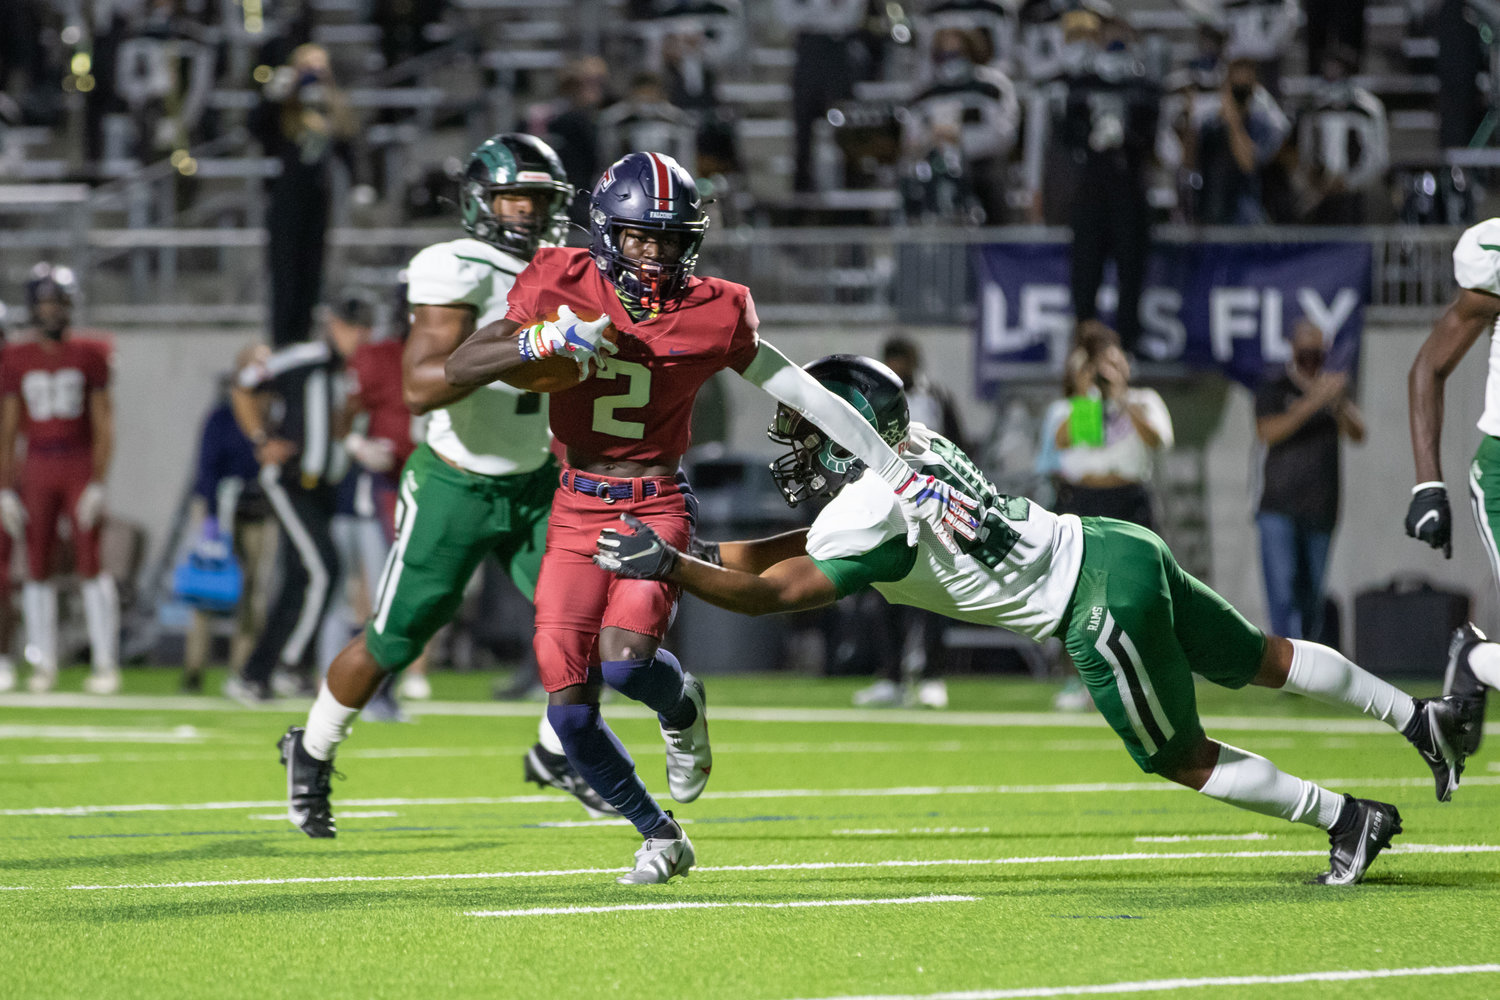 Tompkins receiver Joshua McMillan II makes a catch-and-run during the Falcons' win over Mayde Creek on Thursday evening at Legacy Stadium.